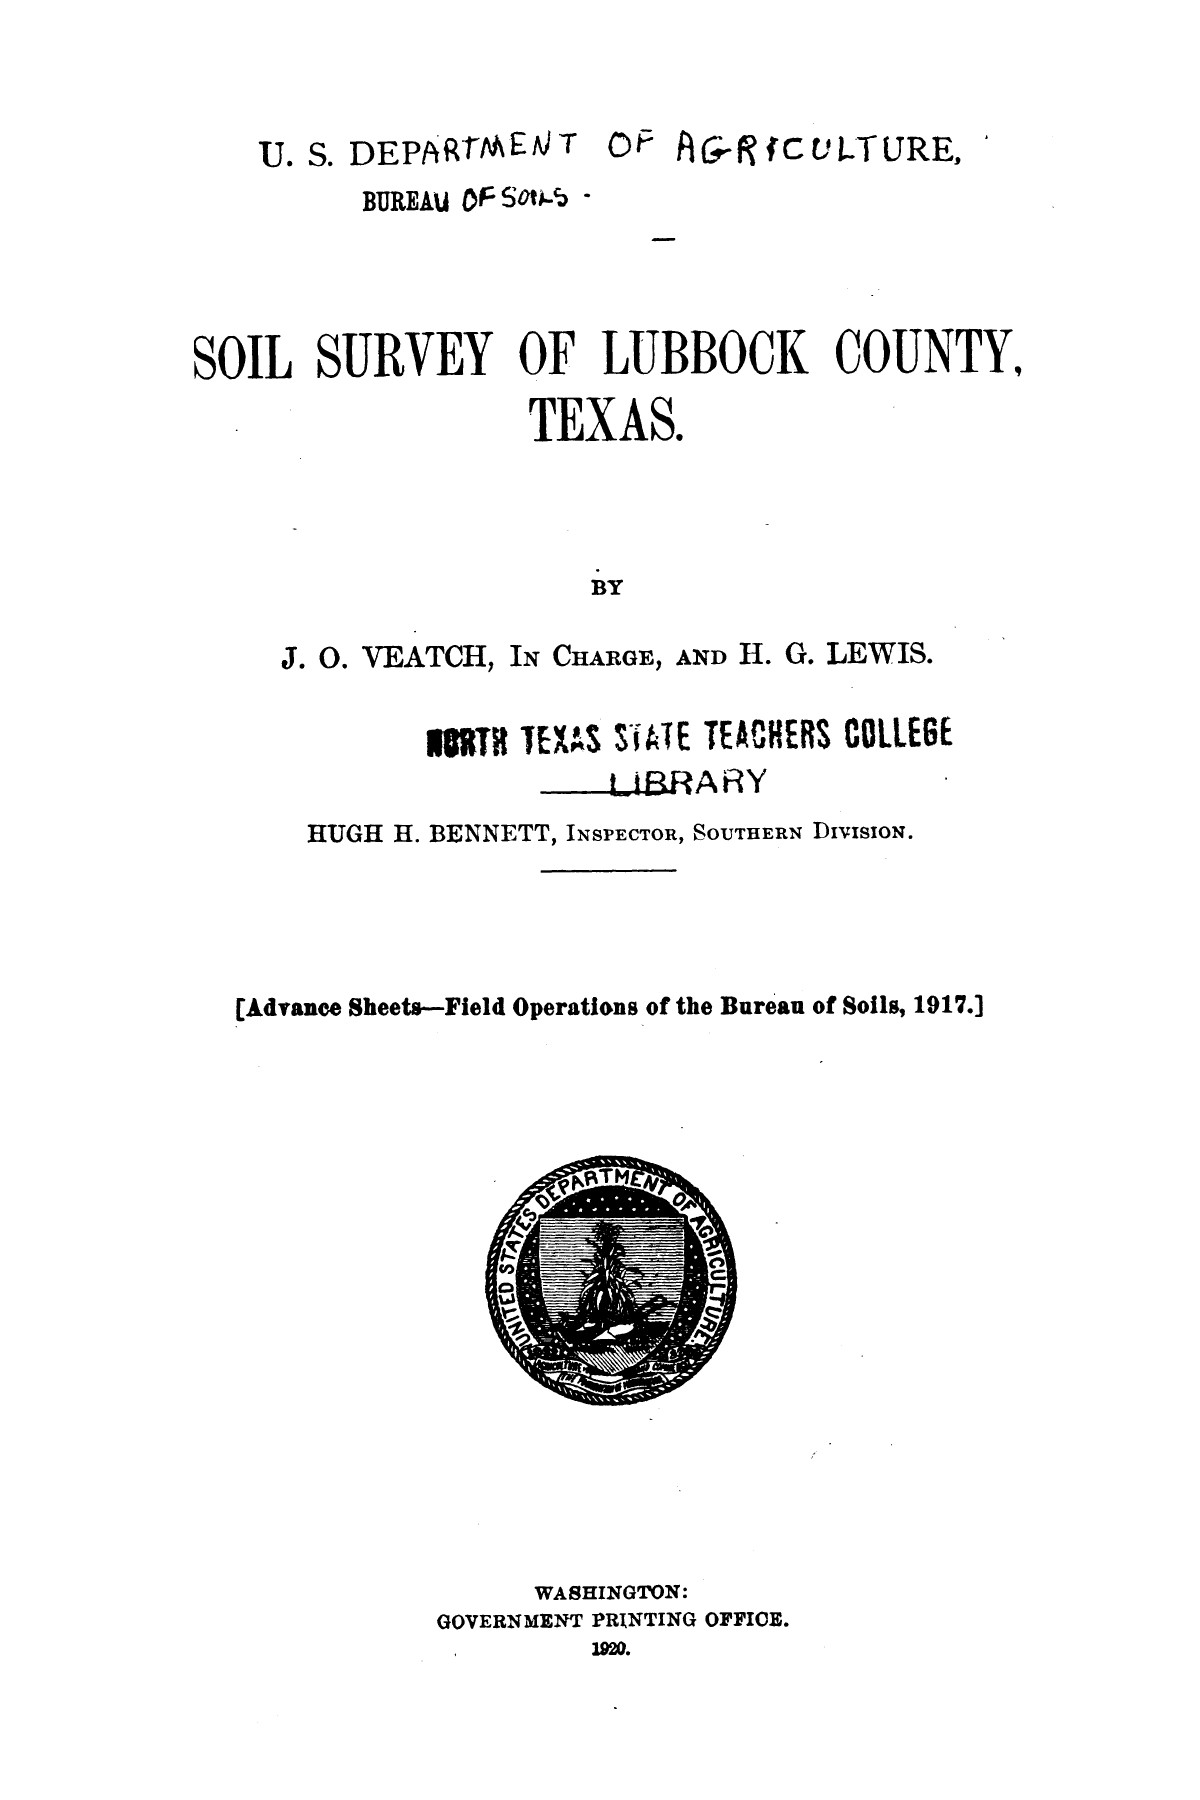 Soil survey of Lubbock County, Texas                                                                                                      [Sequence #]: 1 of 38